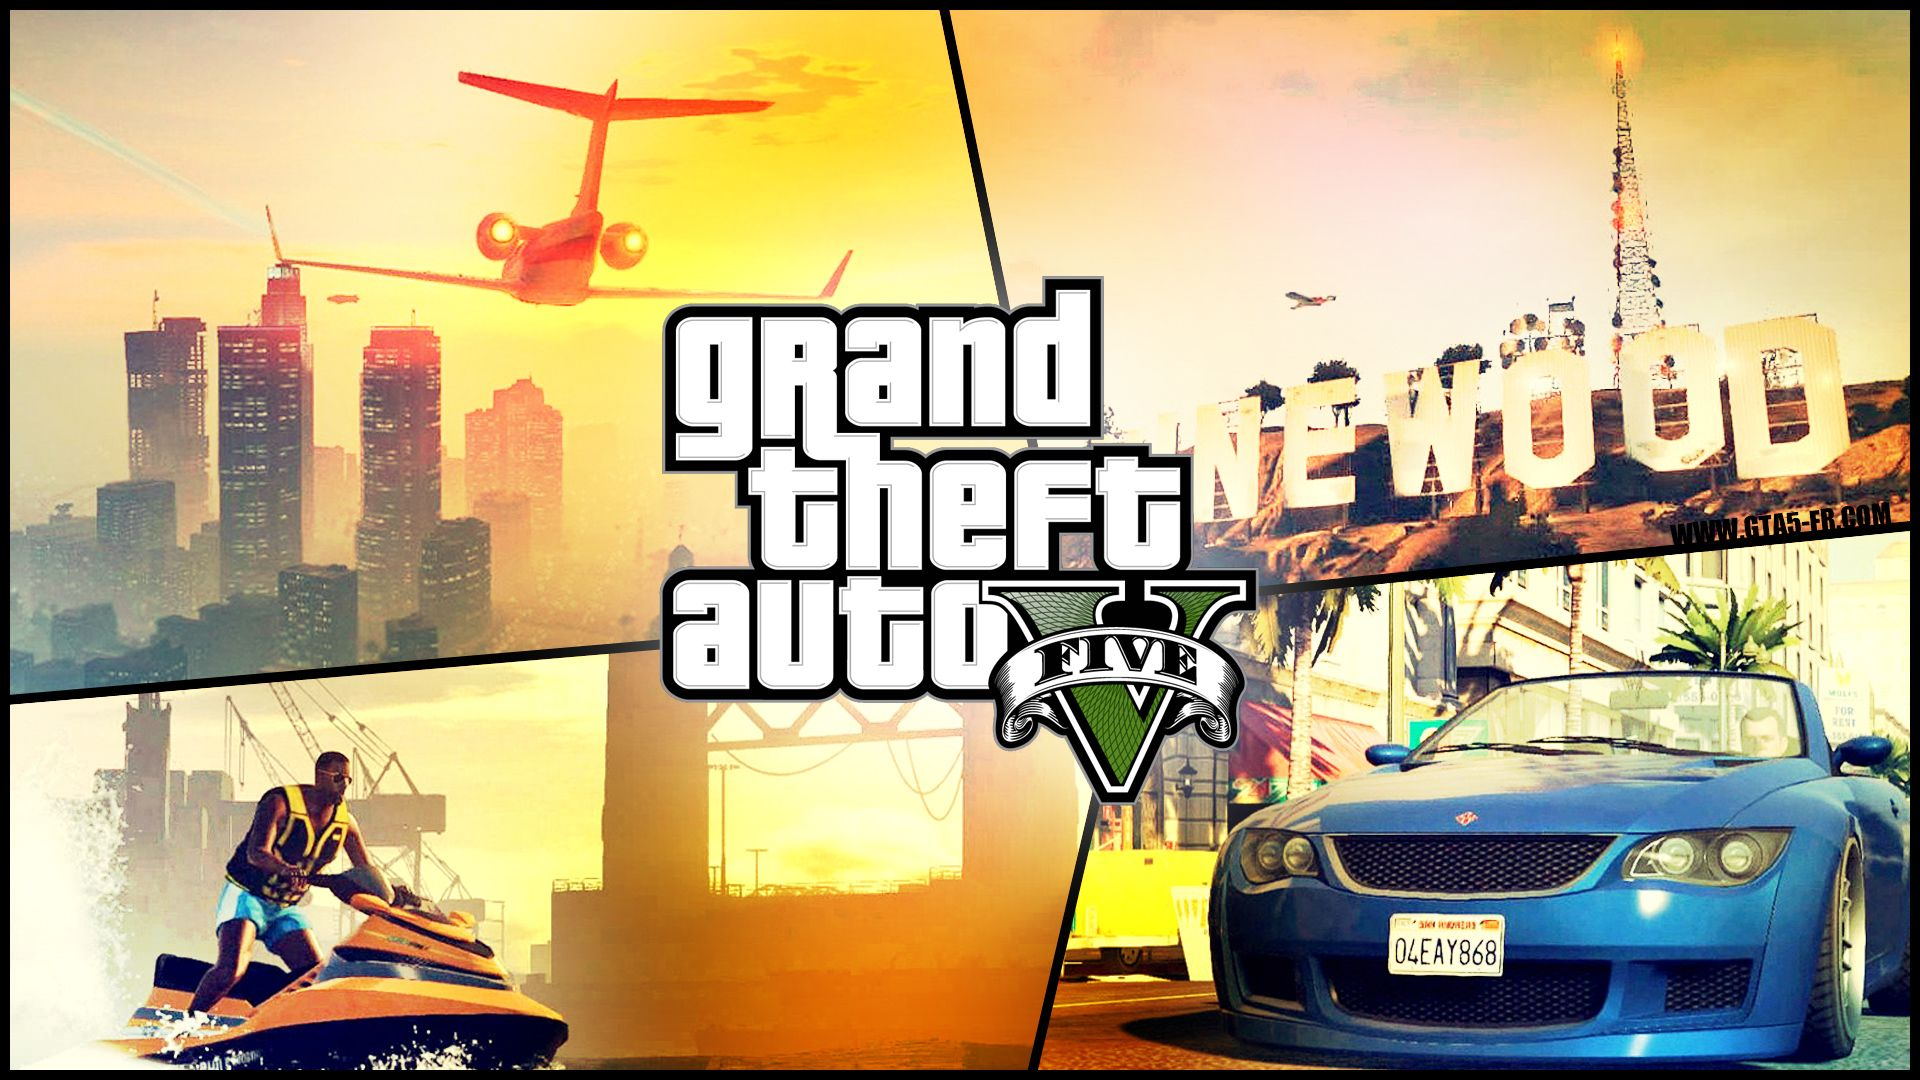 Here comes the most awaited video game of gta 5 and we have prepared a list of gta 5 cheat codes for xbox 360 and gta v cheats and tricks